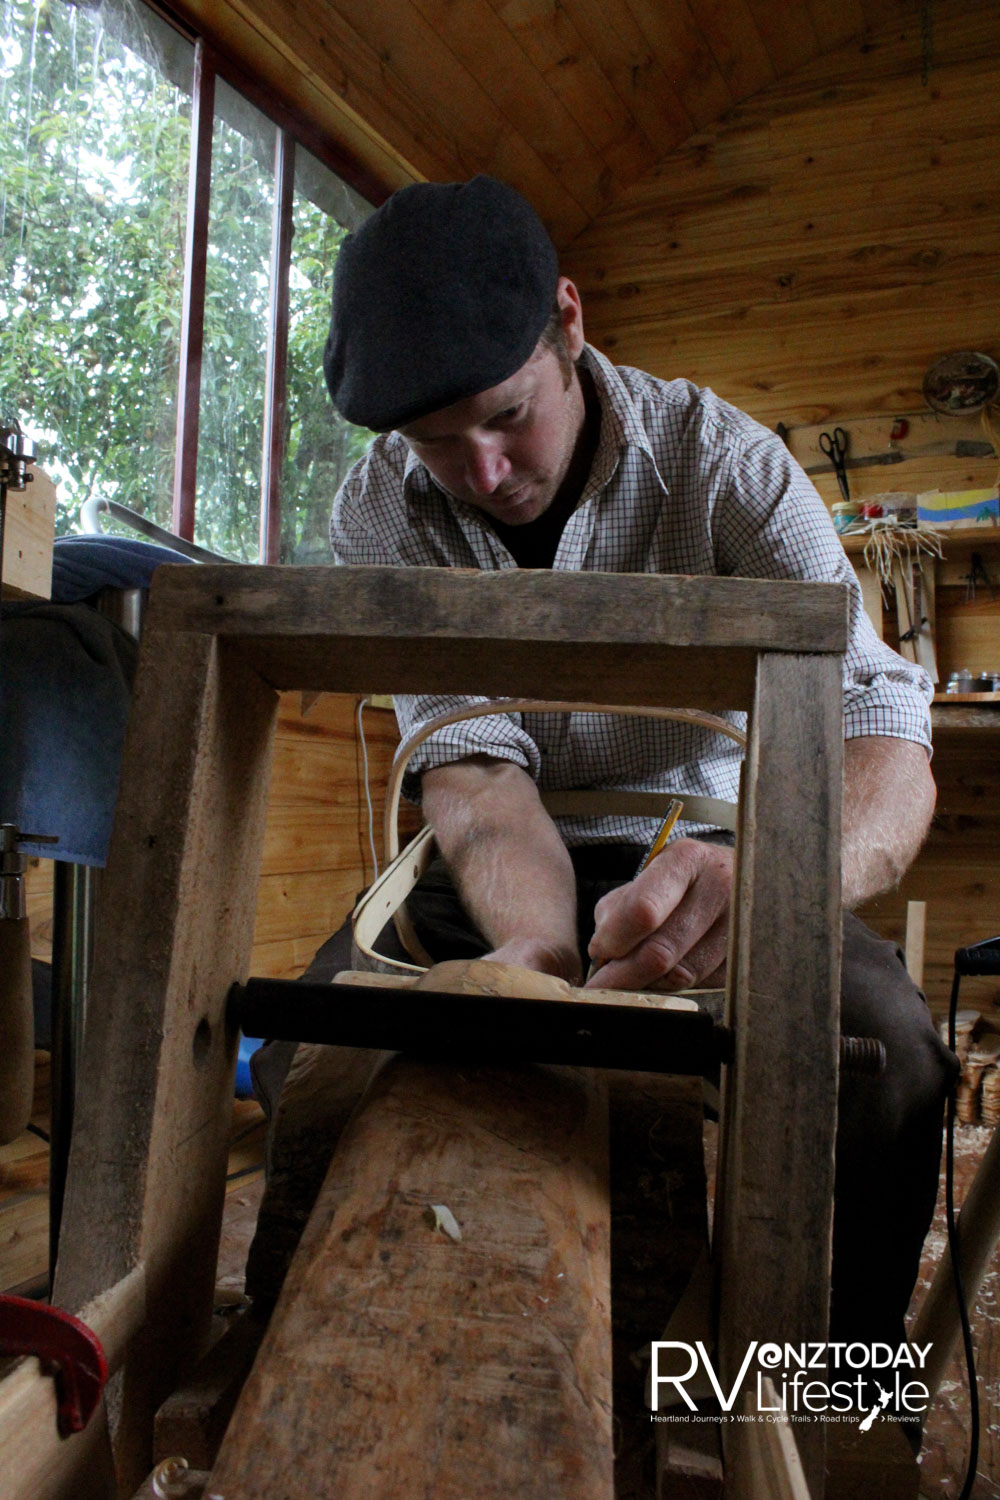 Seated at his special shaving horse, Tony begins assembling another trug (Photo: Lana Taylor)